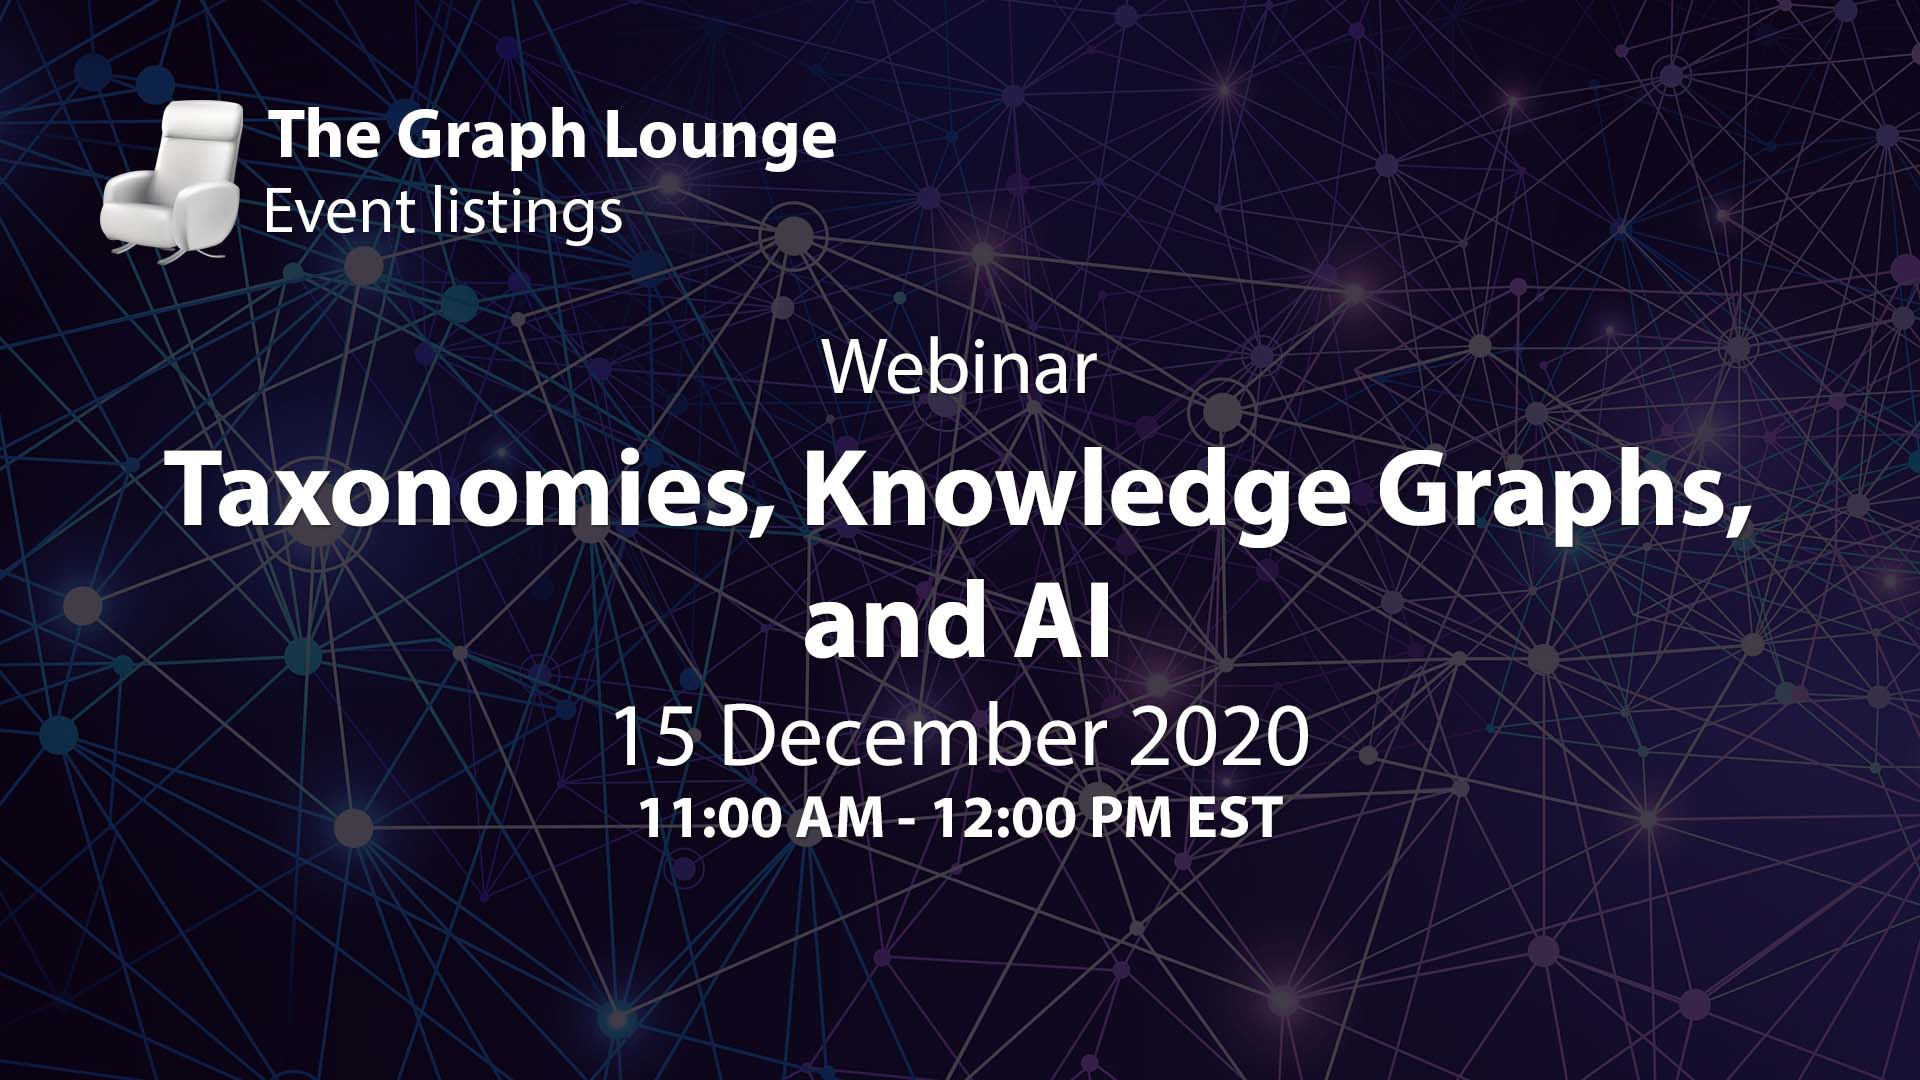 Taxonomies, Knowledge Graphs, and AI